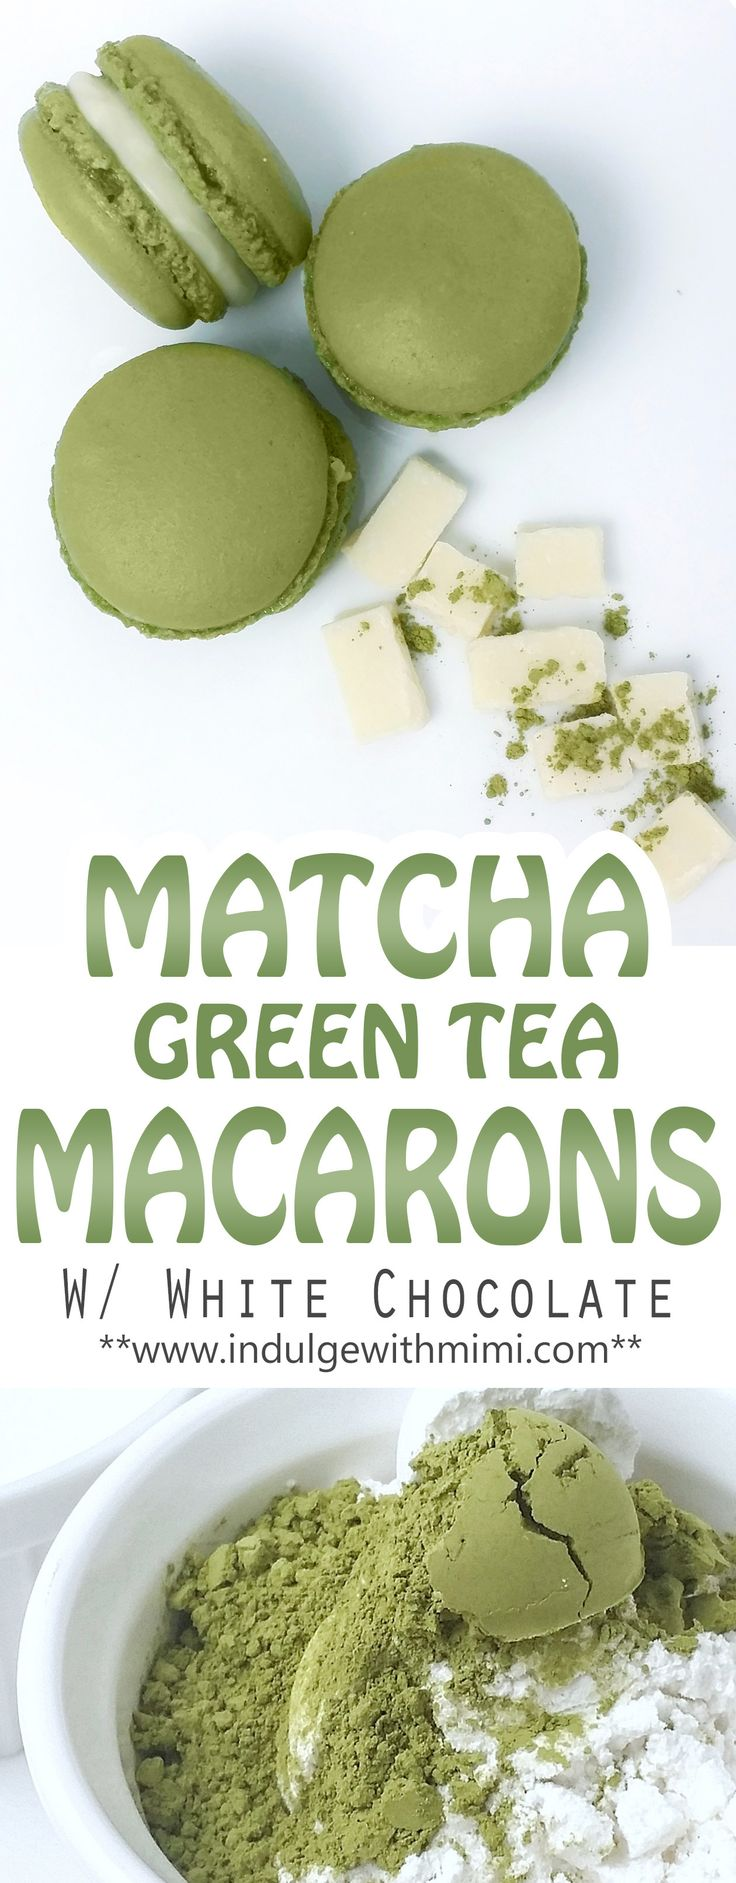 Recipe for Matcha Green Tea INFUSED Macaron Shells with White Chocolate (French Chocolate Desserts)